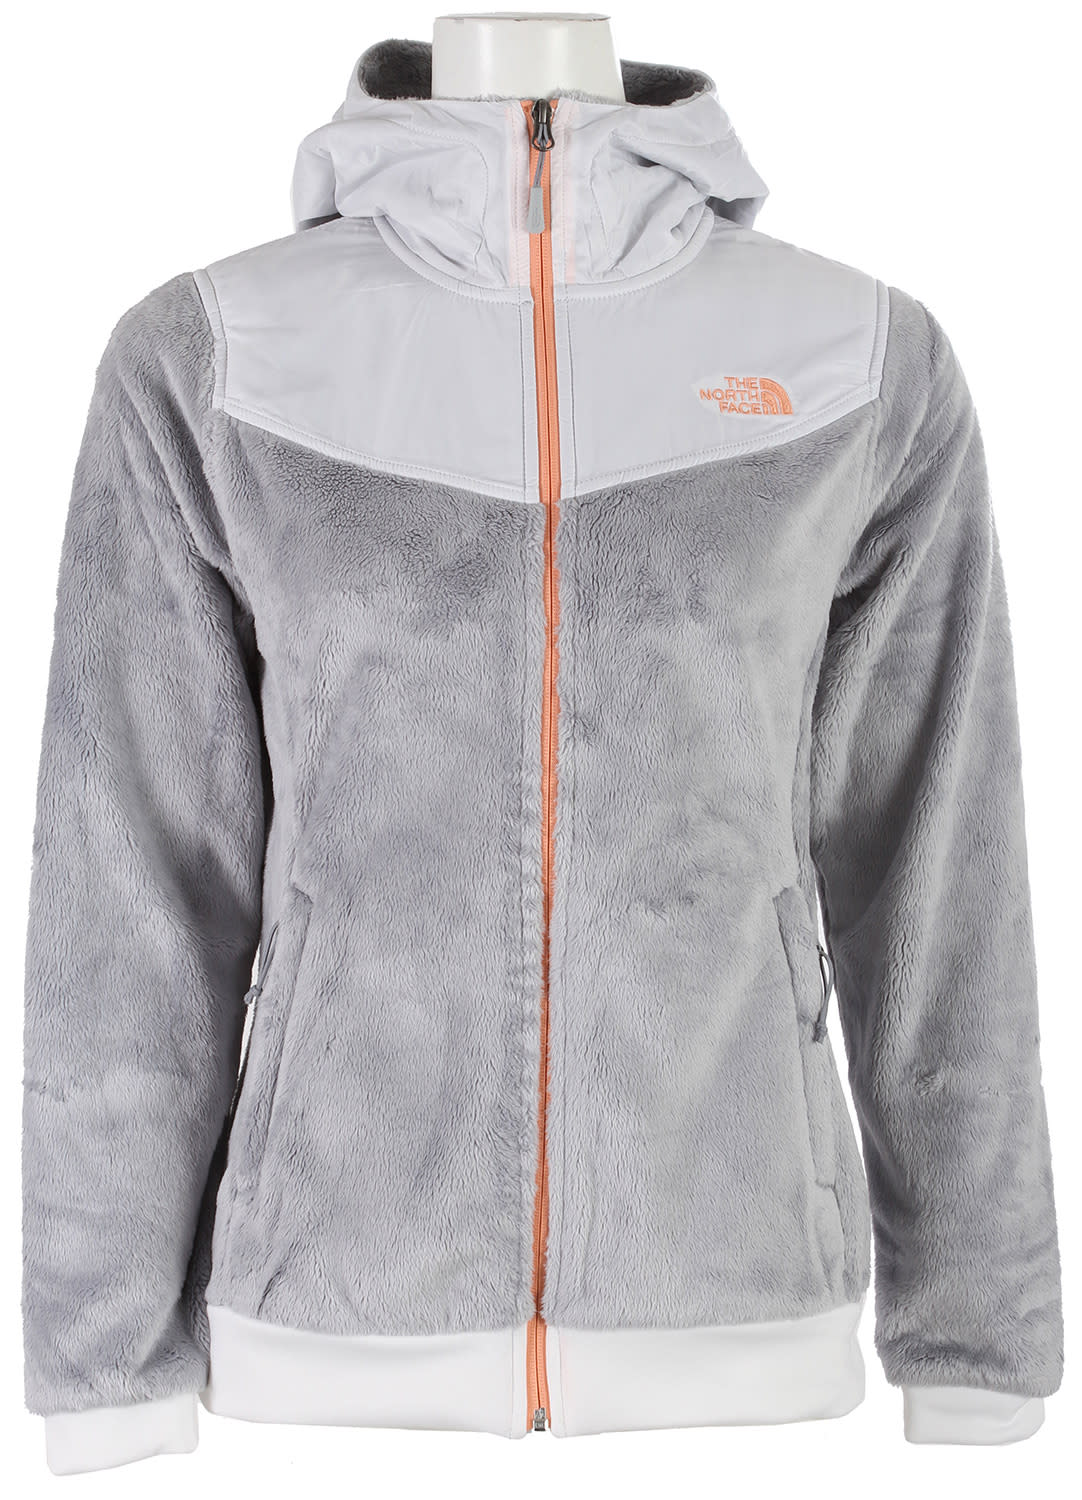 North face oso hoodie women